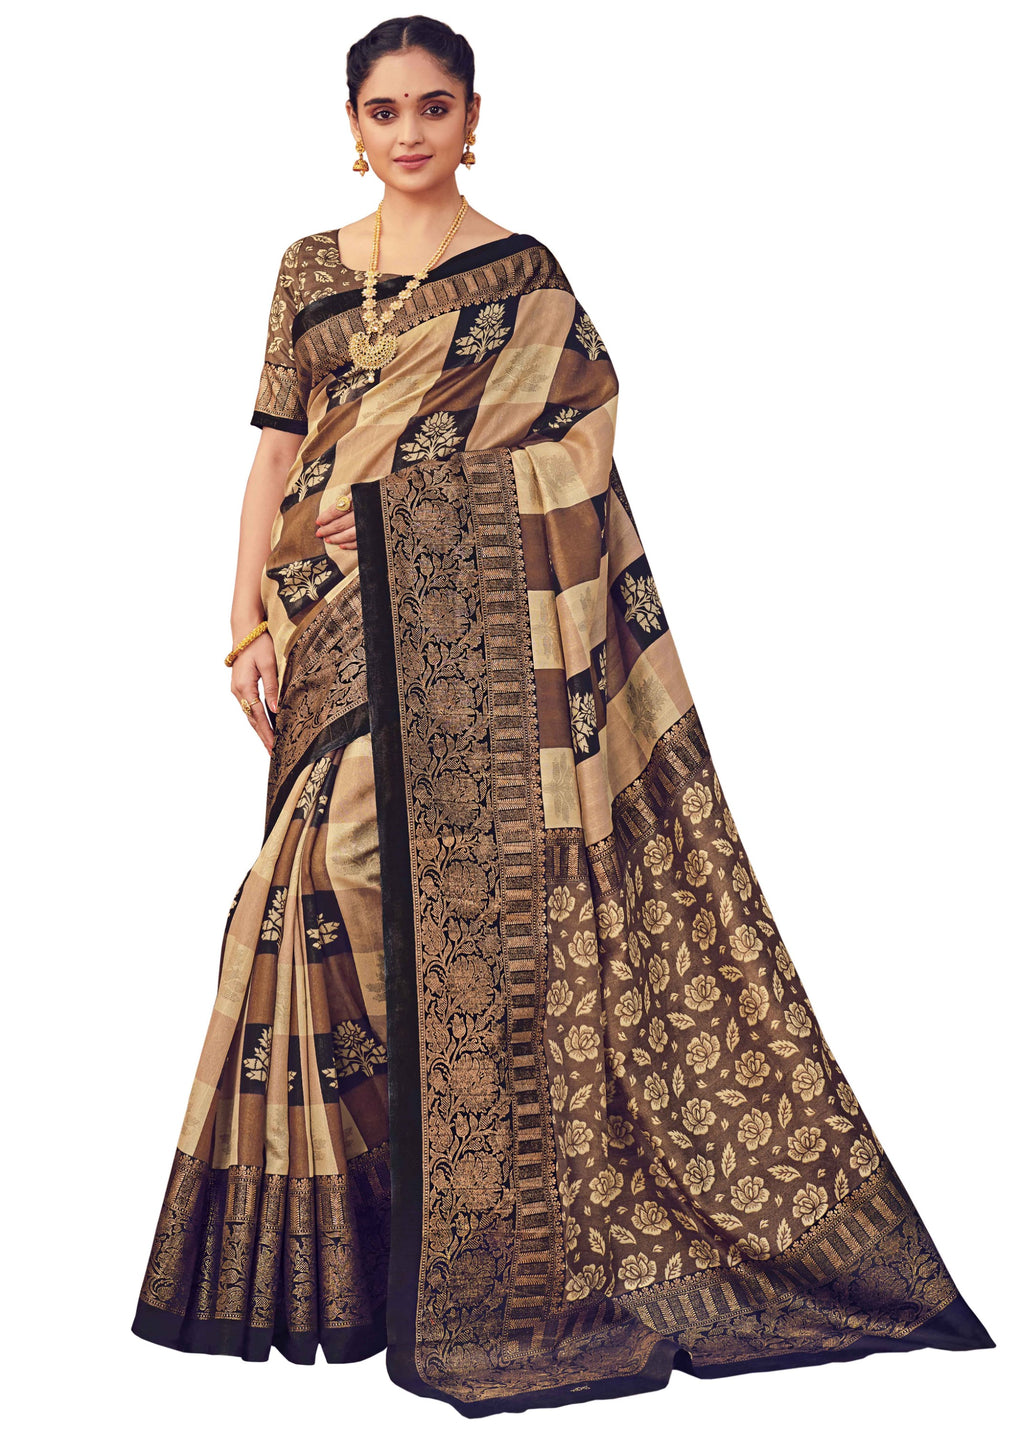 Beige & Brown Color Bhagalpuri Festive & Party Wear Sarees NYF-8640